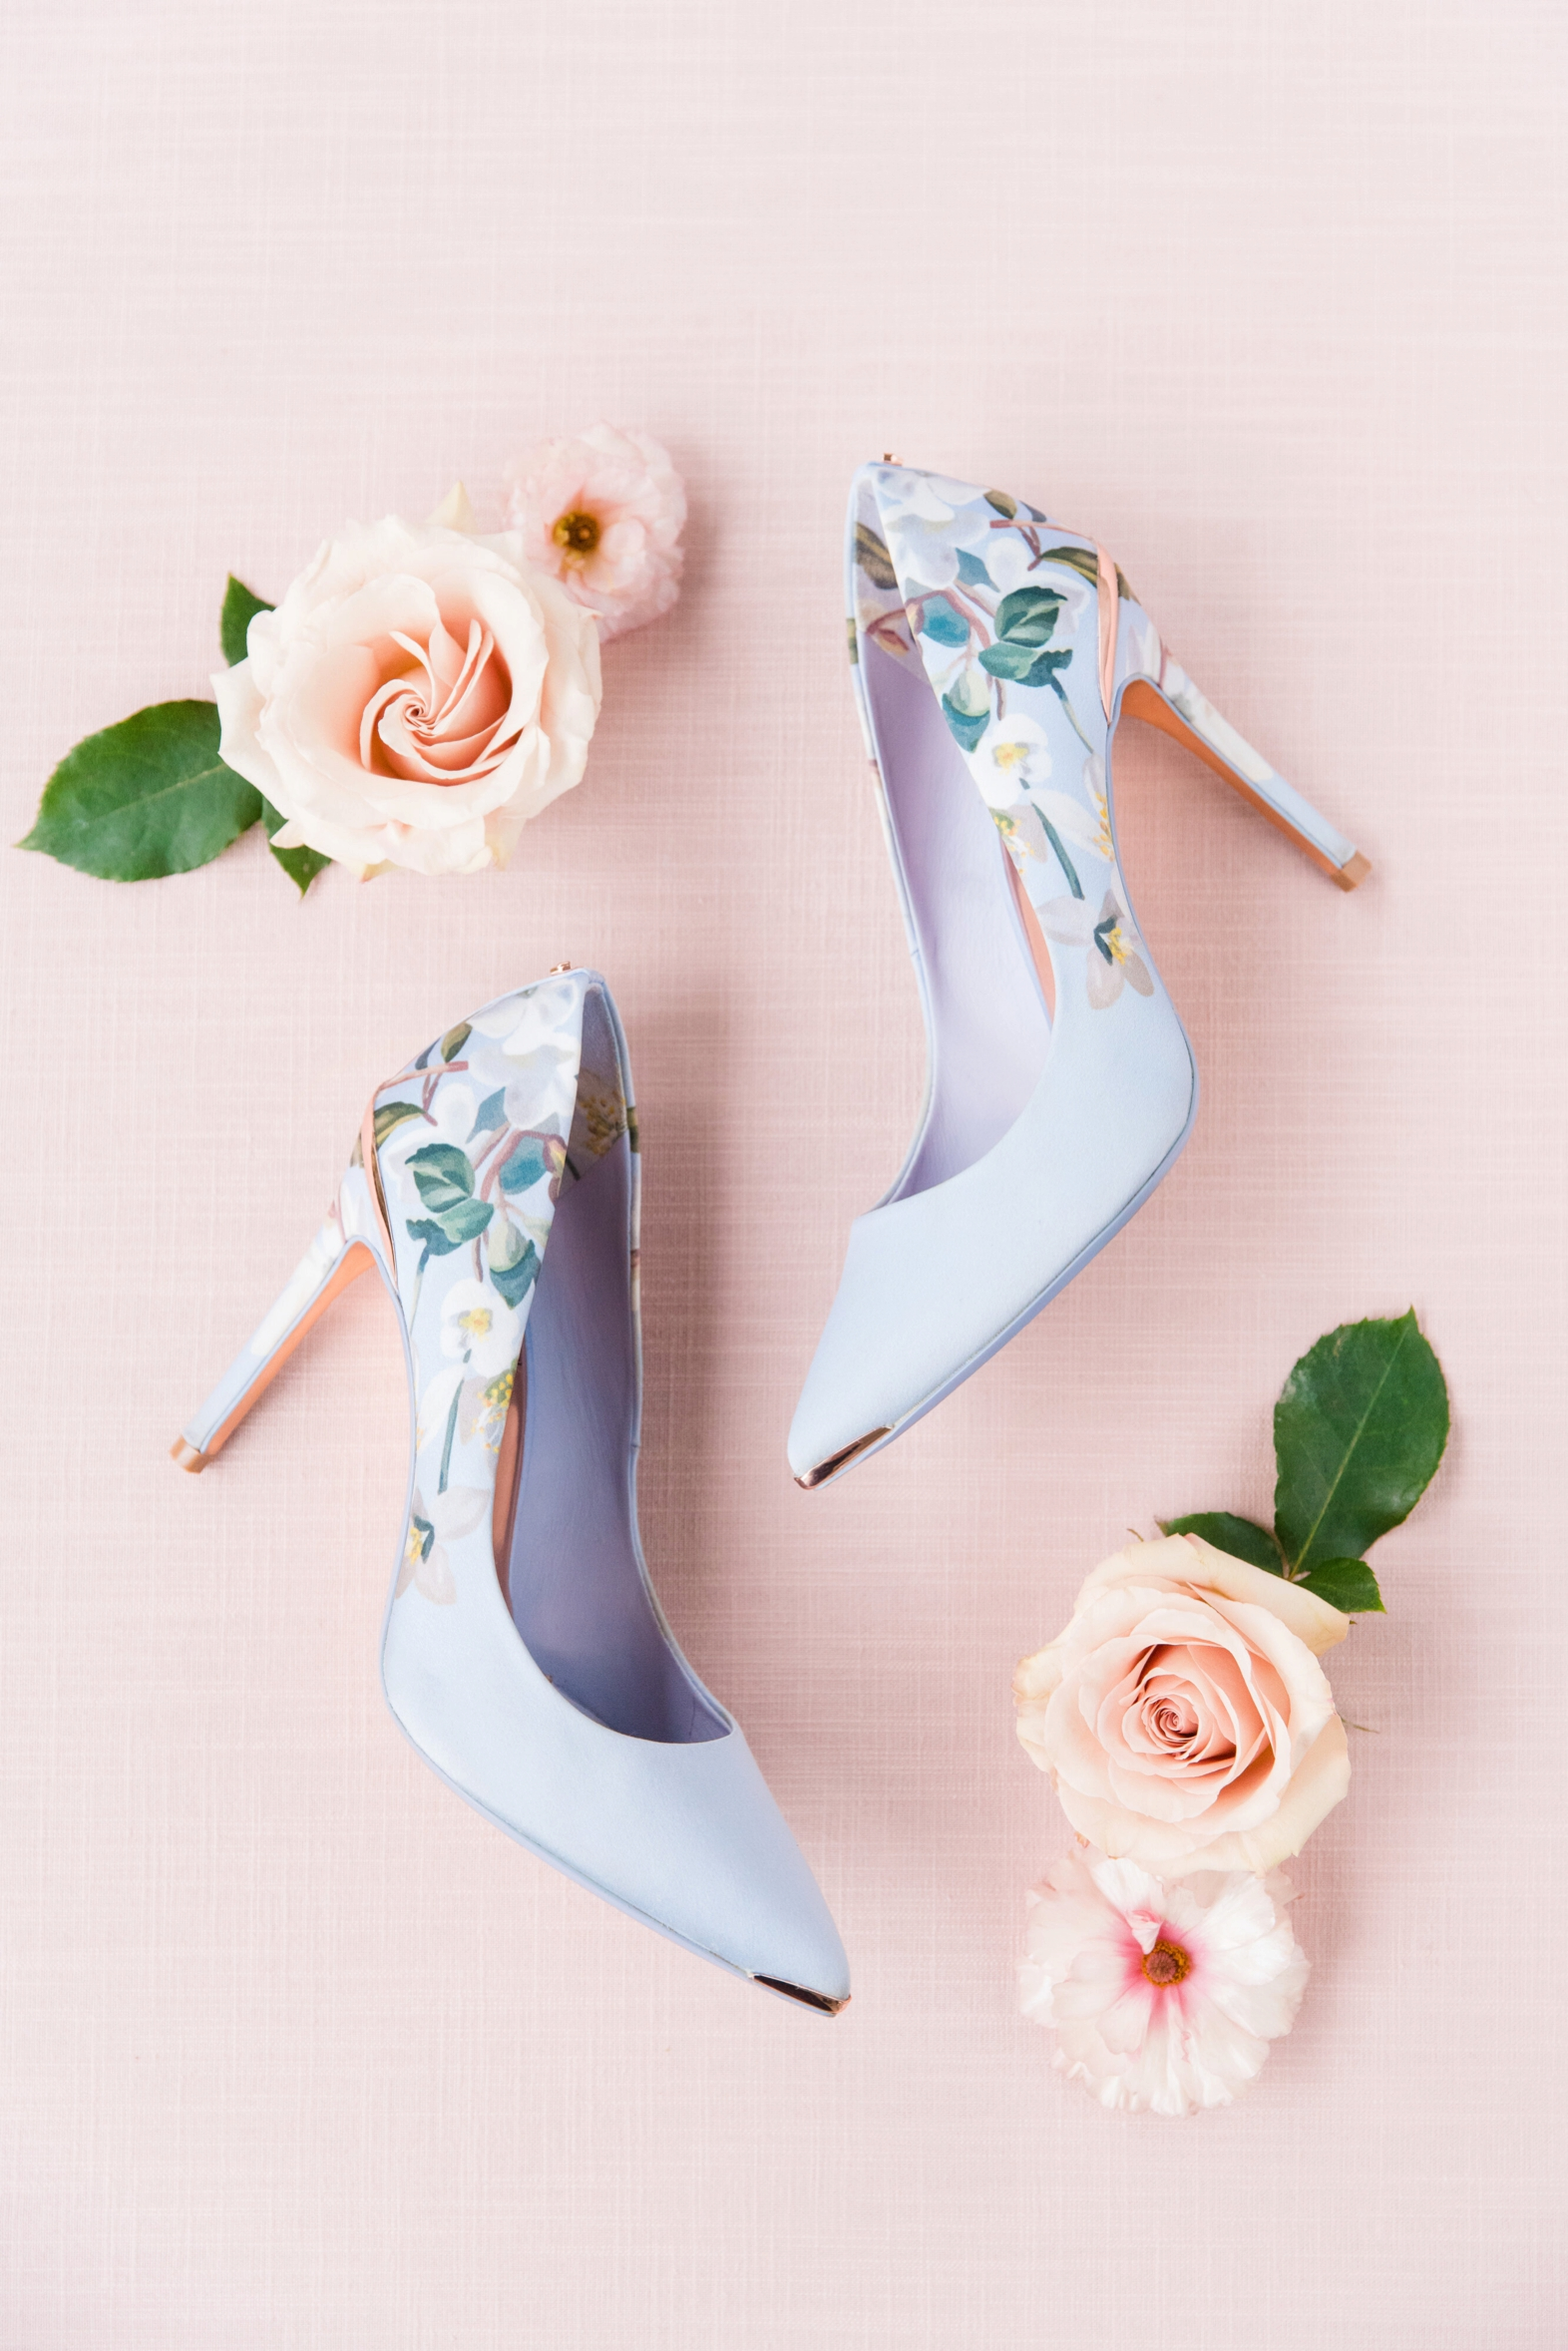 Styled shoot lavender floral heels in floral display - photo by Dana Cubbage Weddings